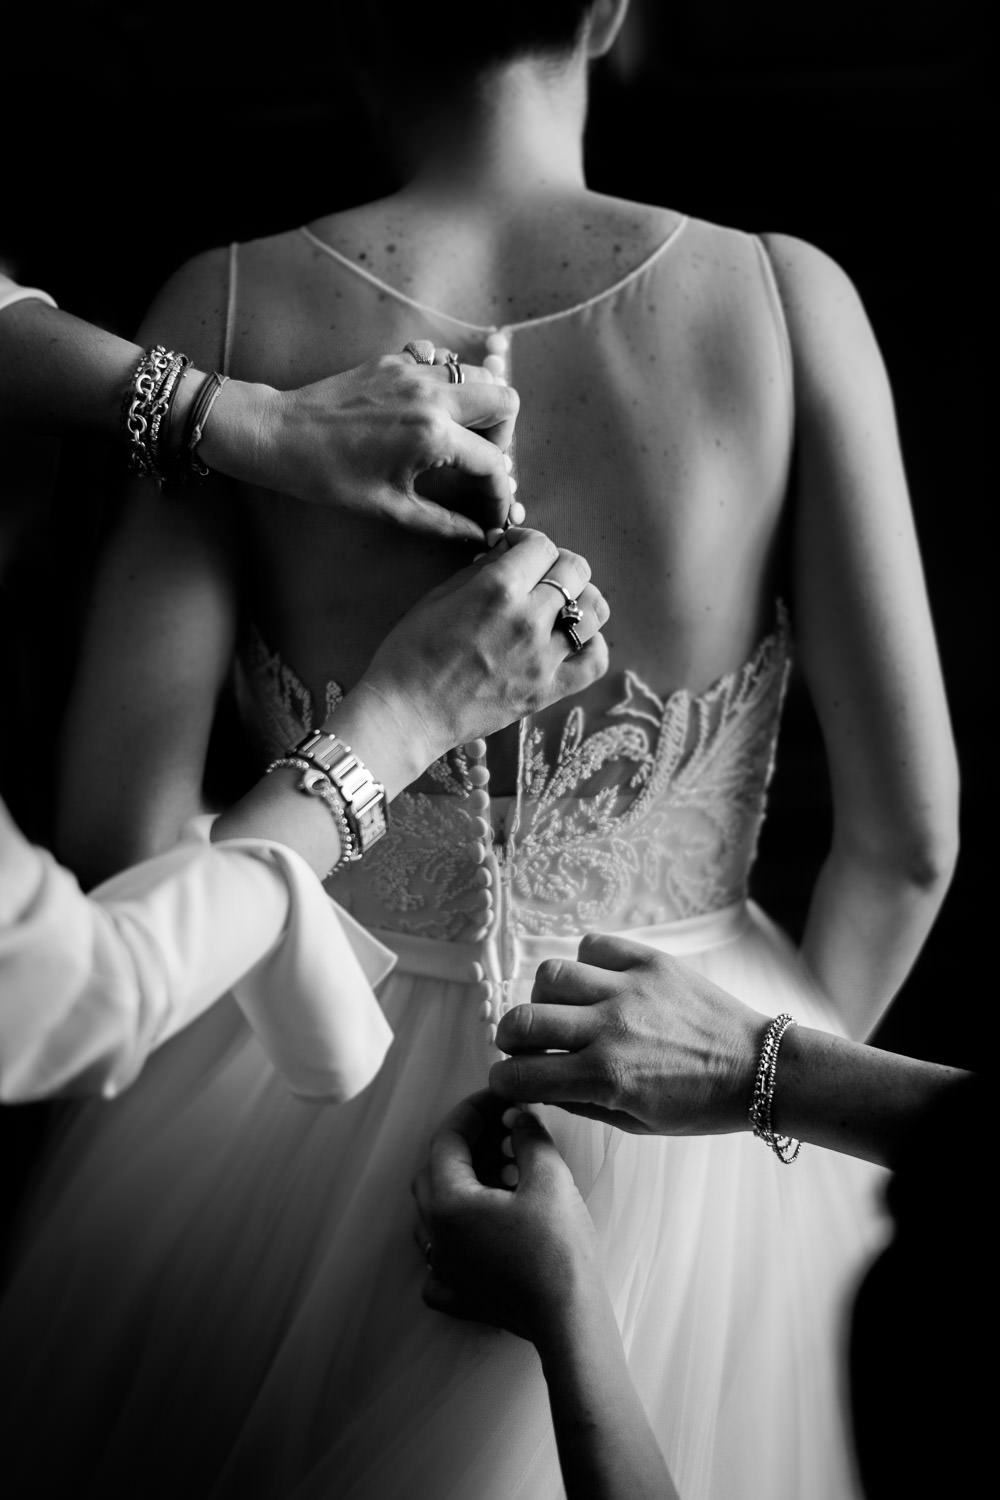 Close up getting bride ready detail of two sets of hands buttoning up brides dress in black and white Italy